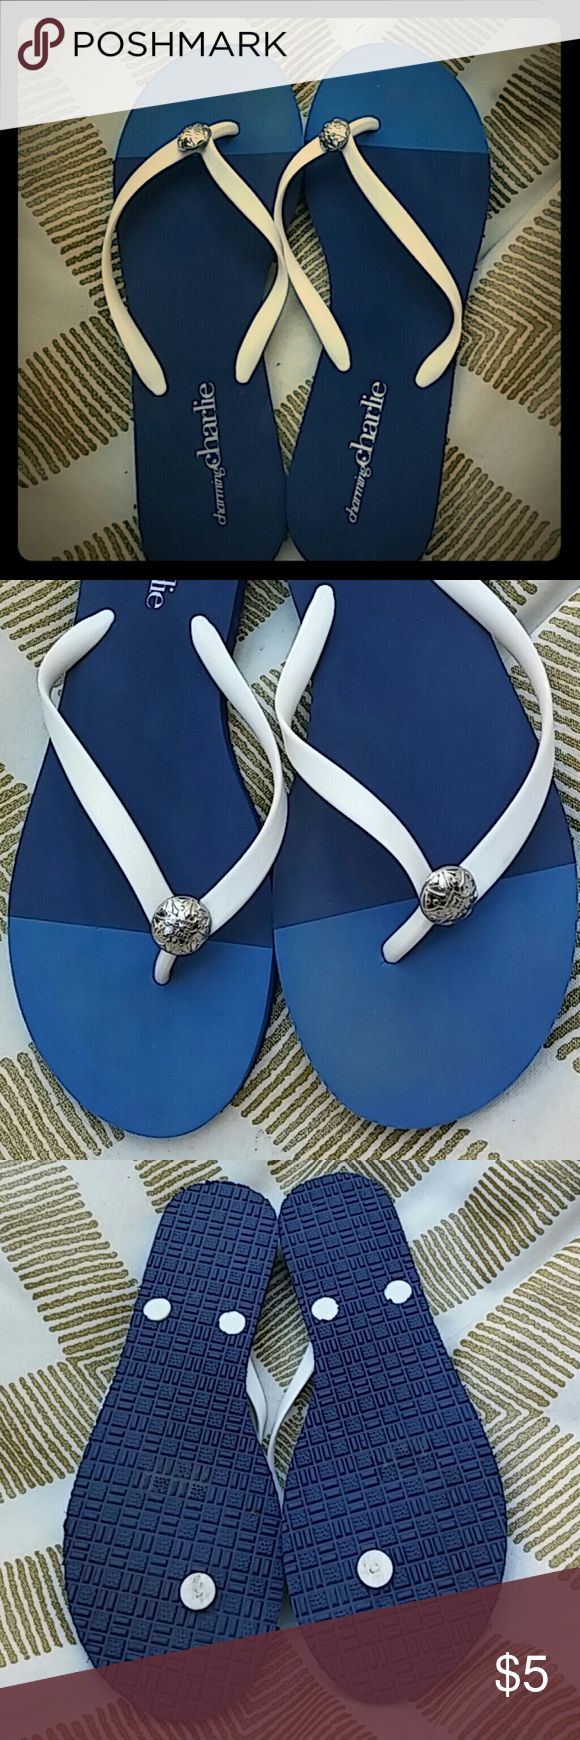 Charming charlies flip flops Blue and white flip flops with silver button on straps Charming Charlie Shoes Sandals